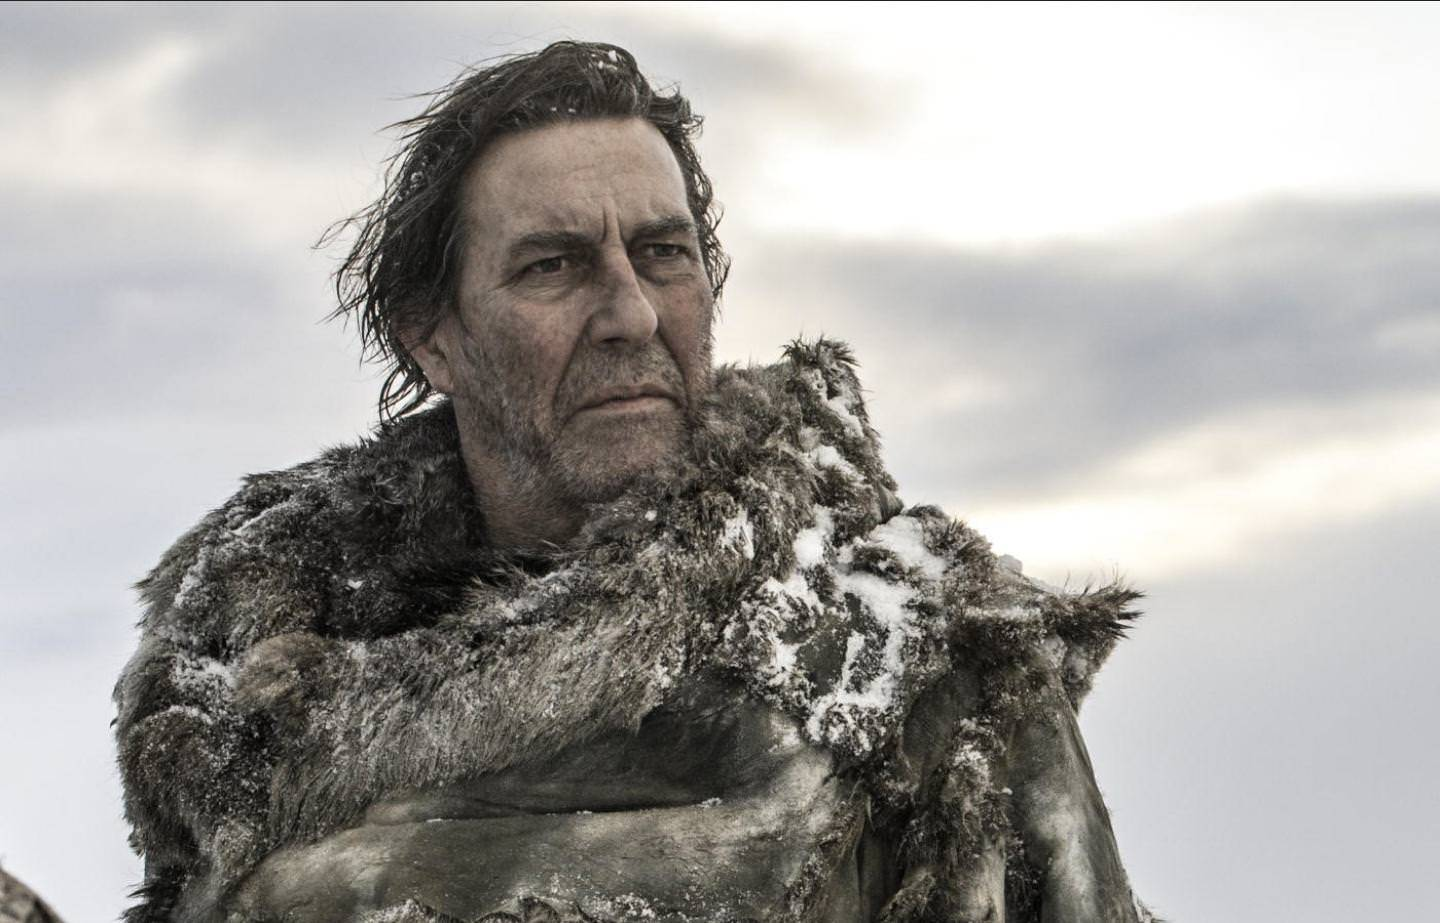 Game of Thrones Mance Rayder Maximum Solubility Collagen